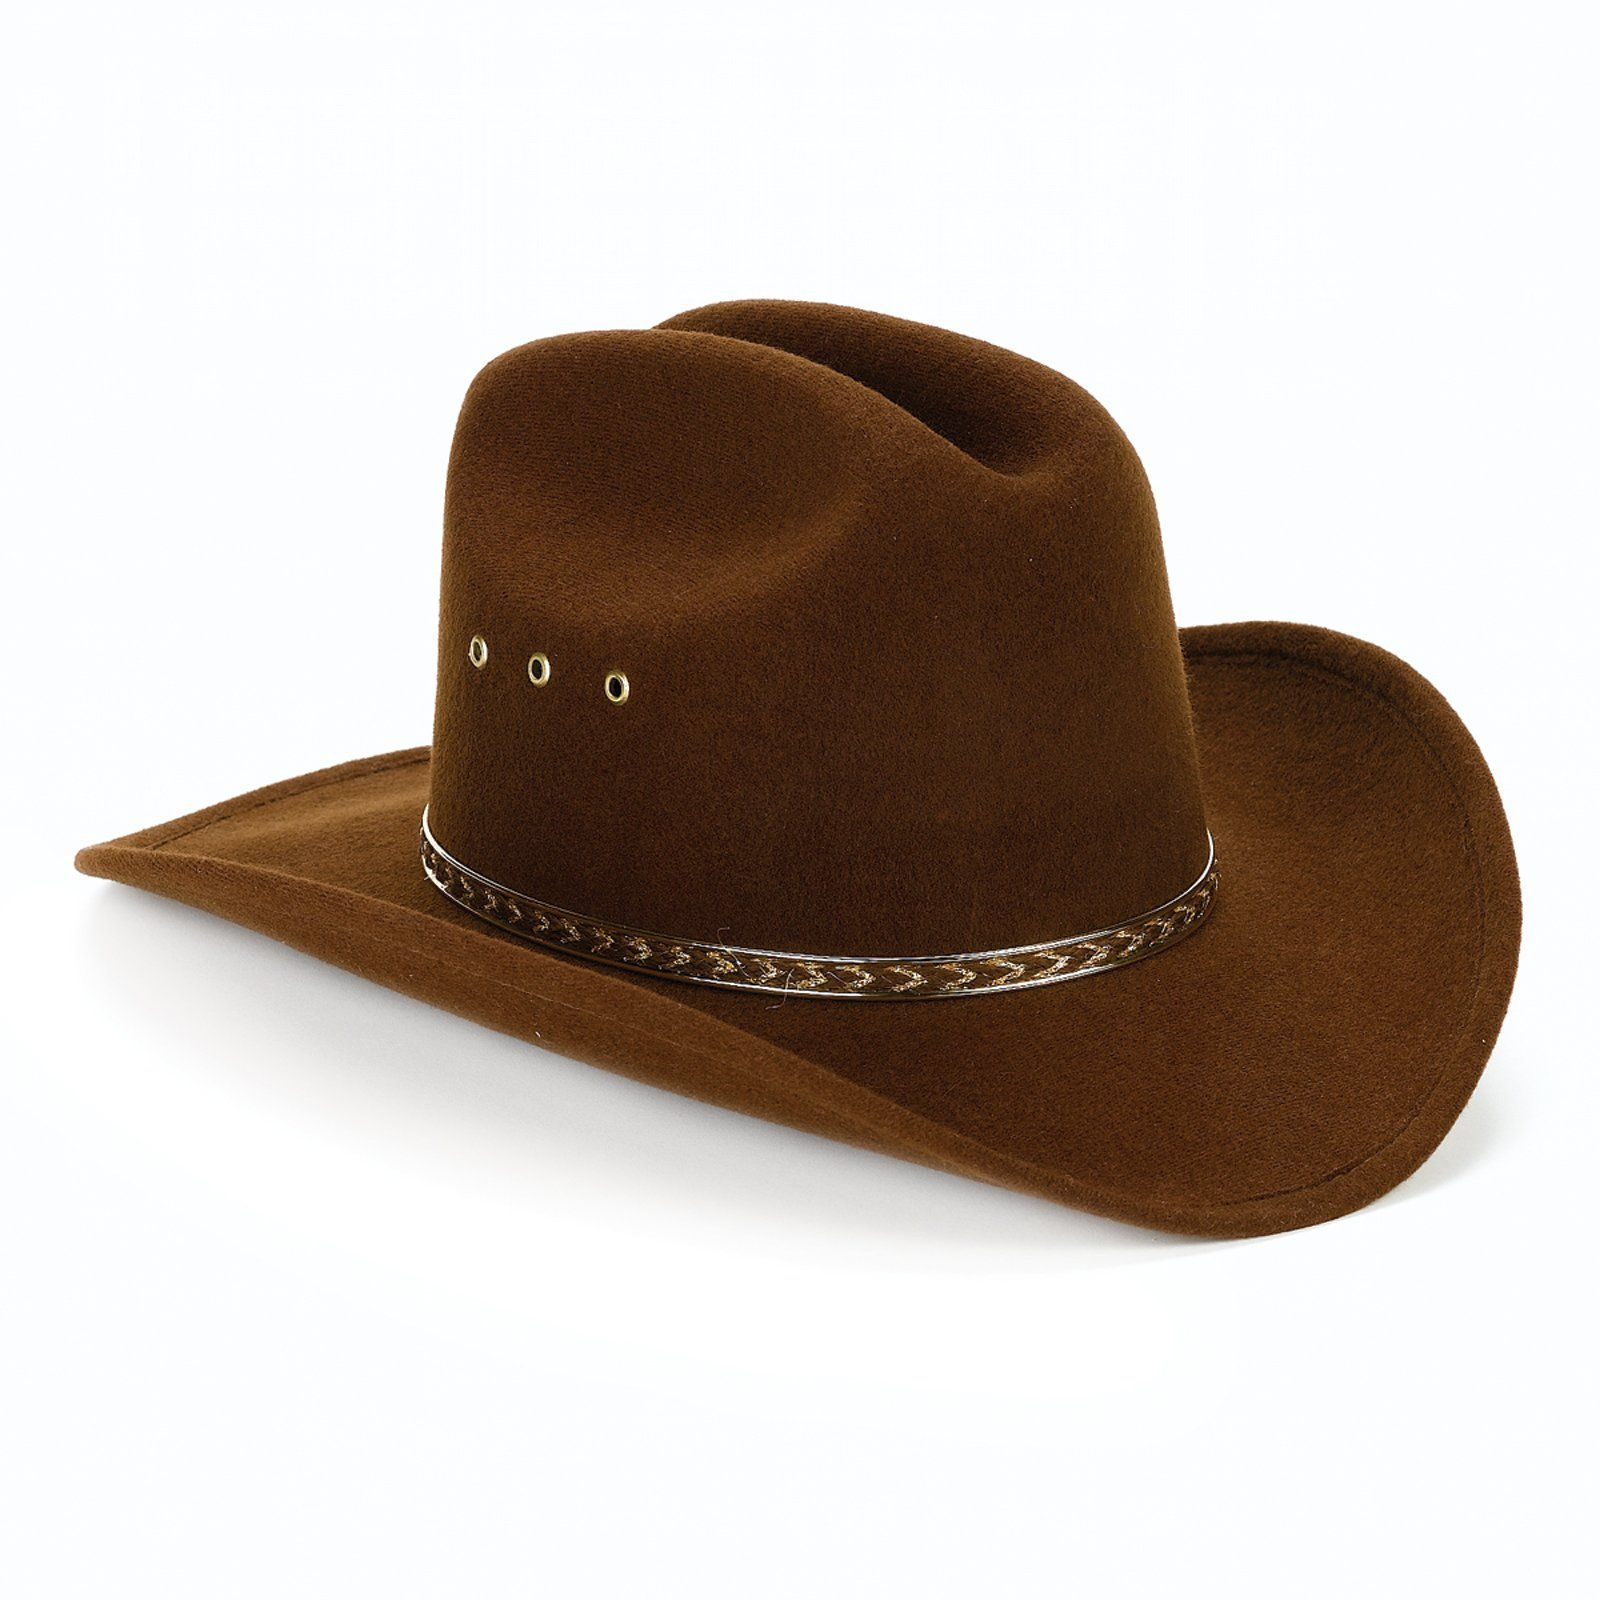 Straw Cowboy Hats Are Getting Popular For Summer Because They Have A Cooling Effect Description From Menfash Us I Cowboy Hats Brown Cowboy Hat Cowboy Outfits